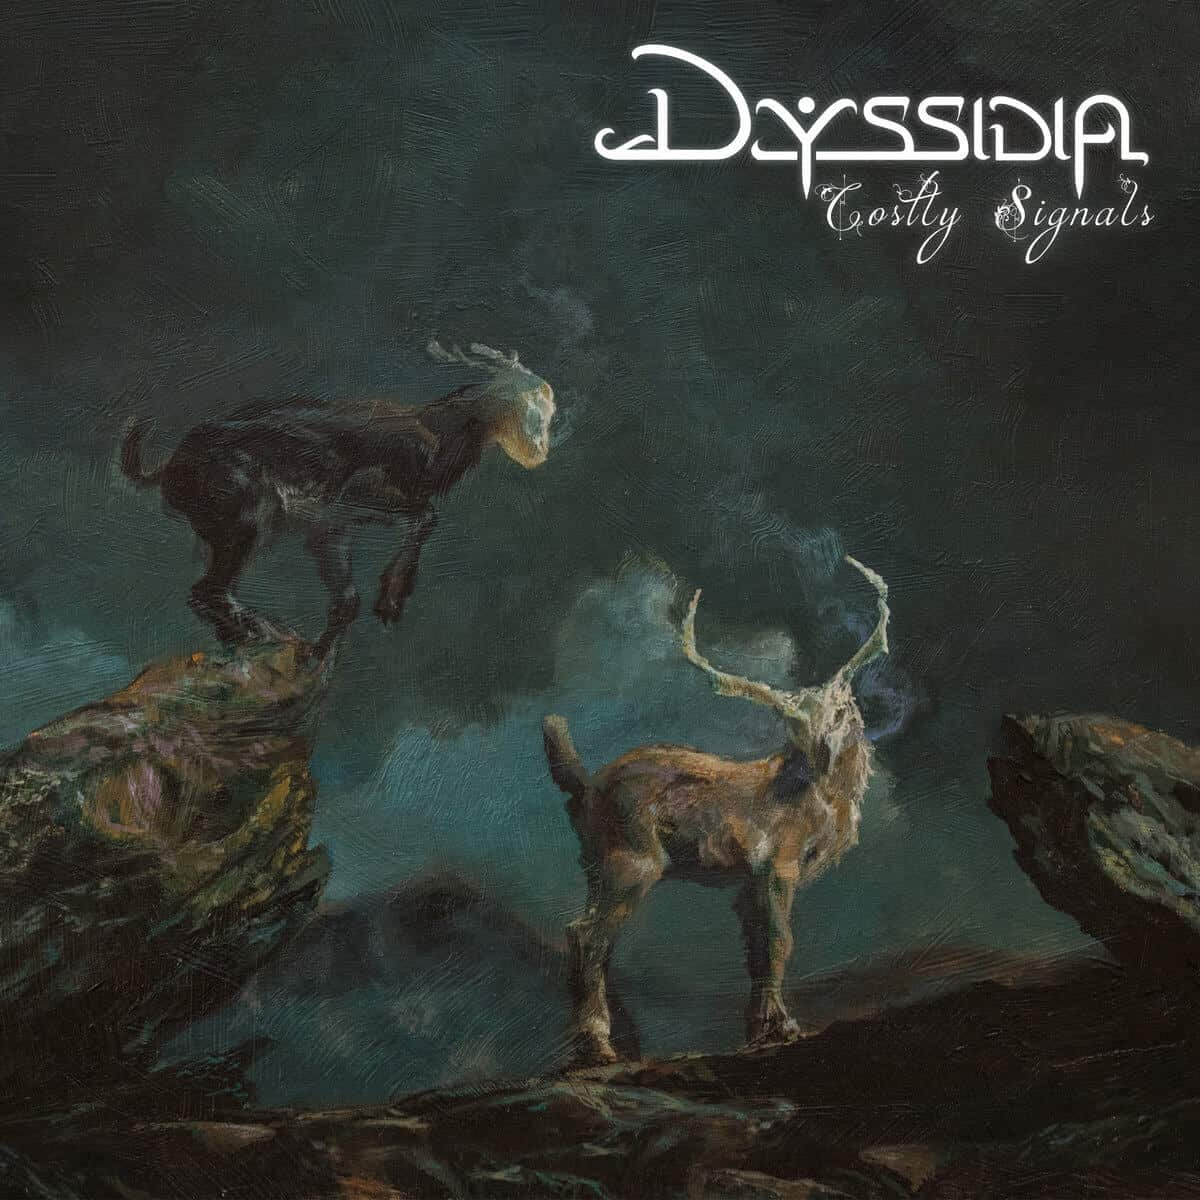 NEW RELEASE: Dyssidia - Costly Signals #march272020 #progressivemetal from Adelaide, Australia   https://morbidexpectations.com/dyssidia-costly-signals/ …pic.twitter.com/GHL3eoSYy5